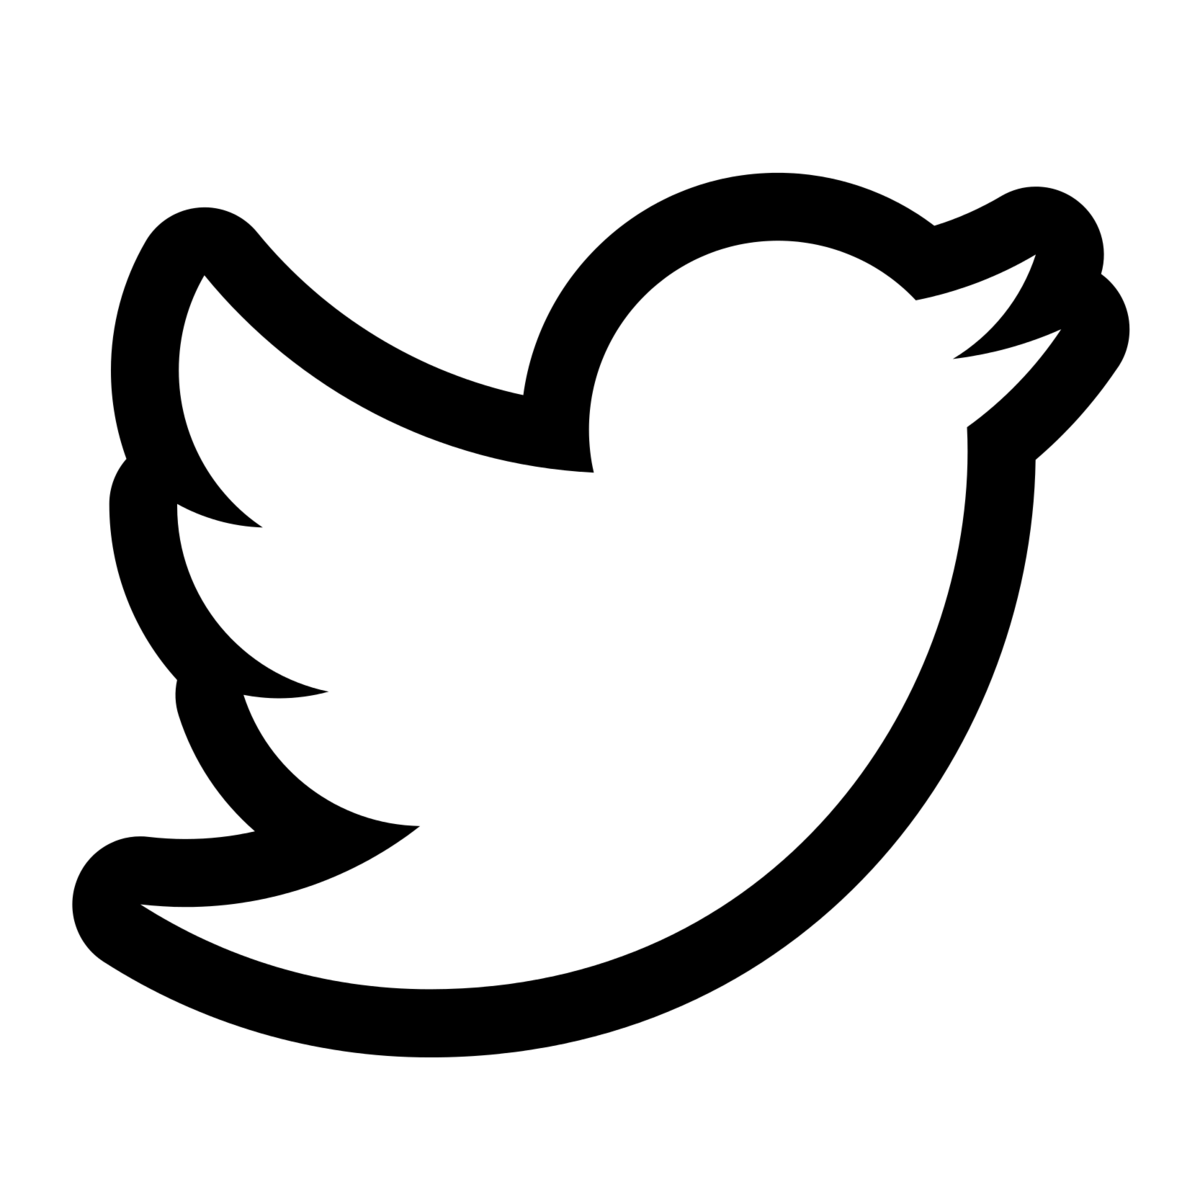 Black and white twitter logo png. Transparent st anthony s